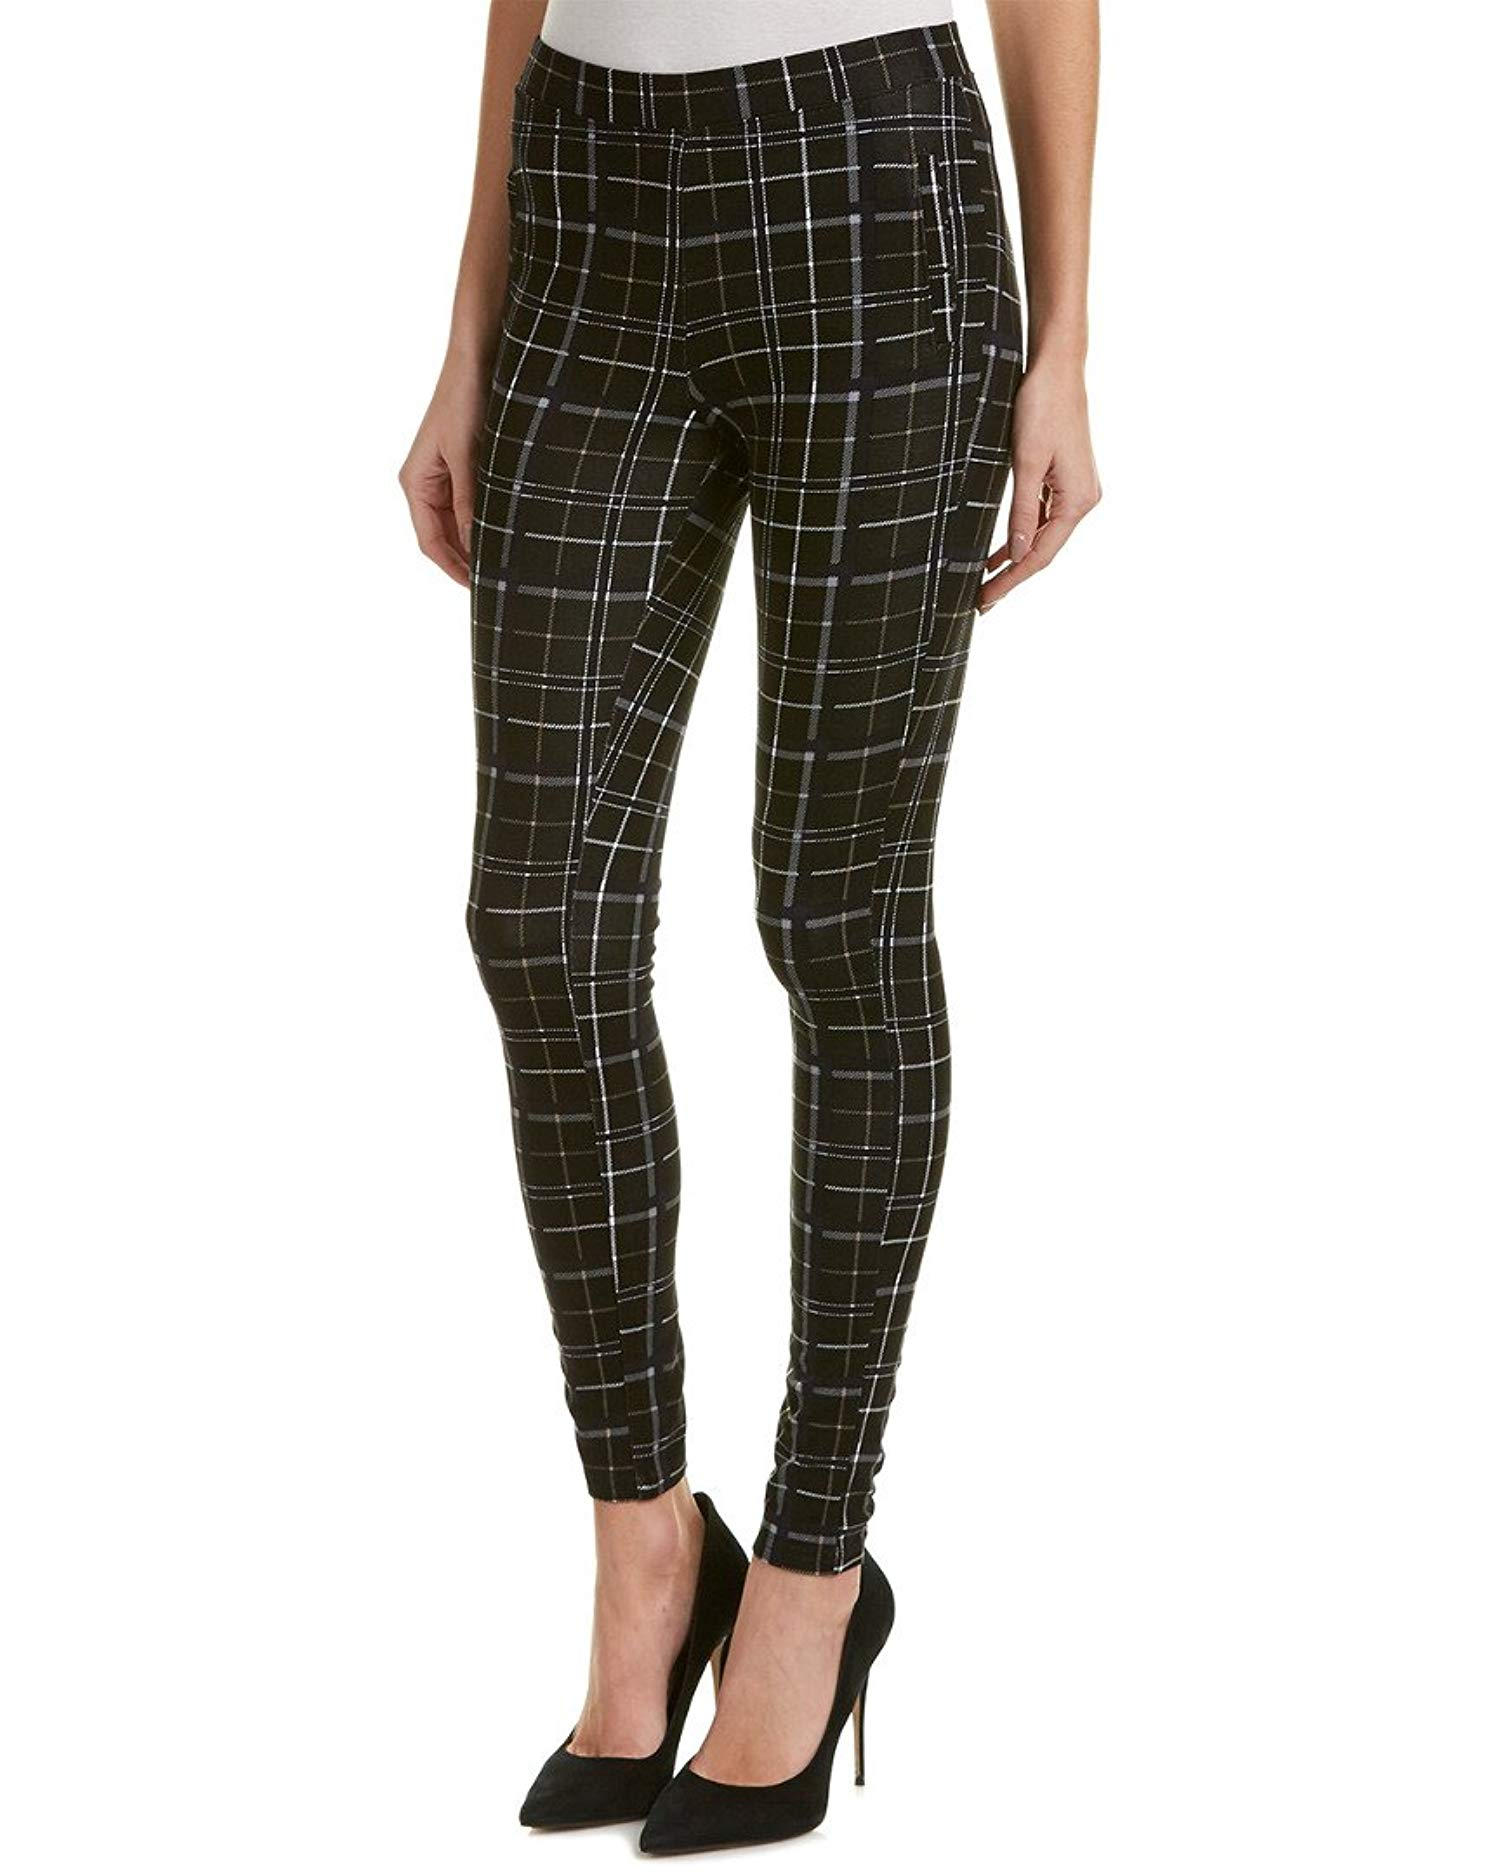 387a2b64b08cfc Hue Womens Summer Plaid Loafer Skimmer Leggings Black Size Small ...